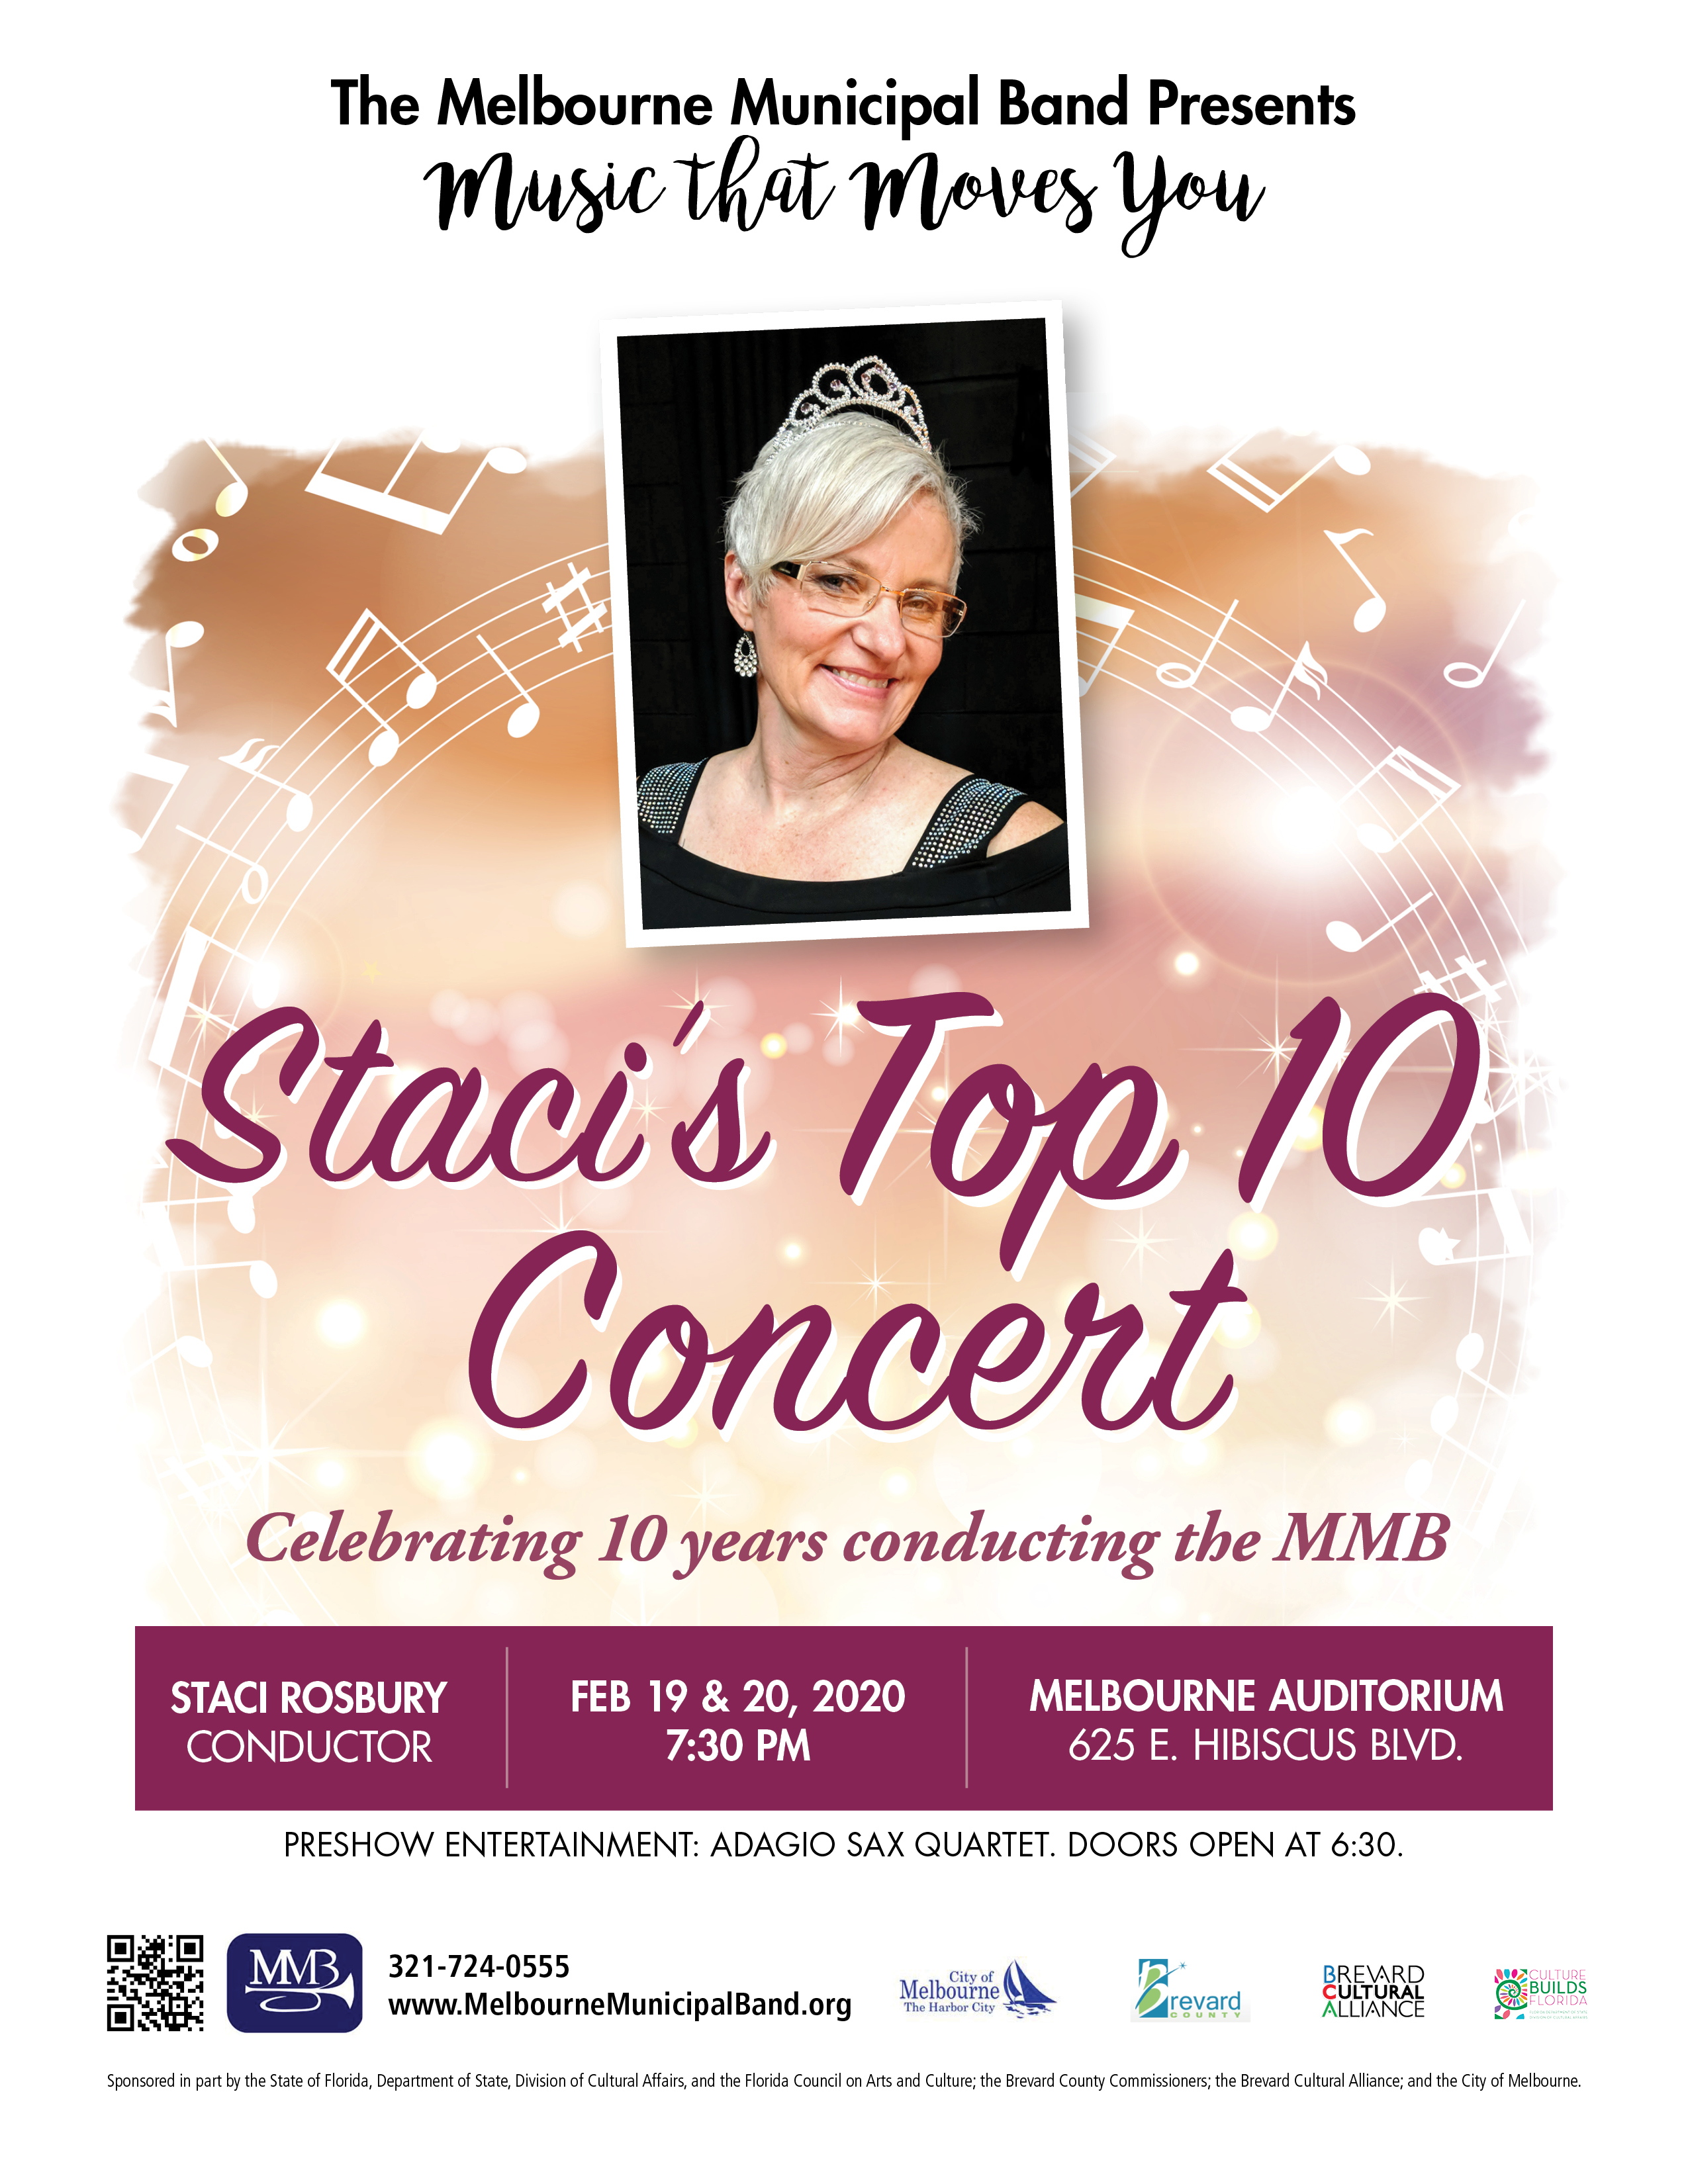 'Staci's Top 10 Concert' presented by The Melbourne Municipal Band